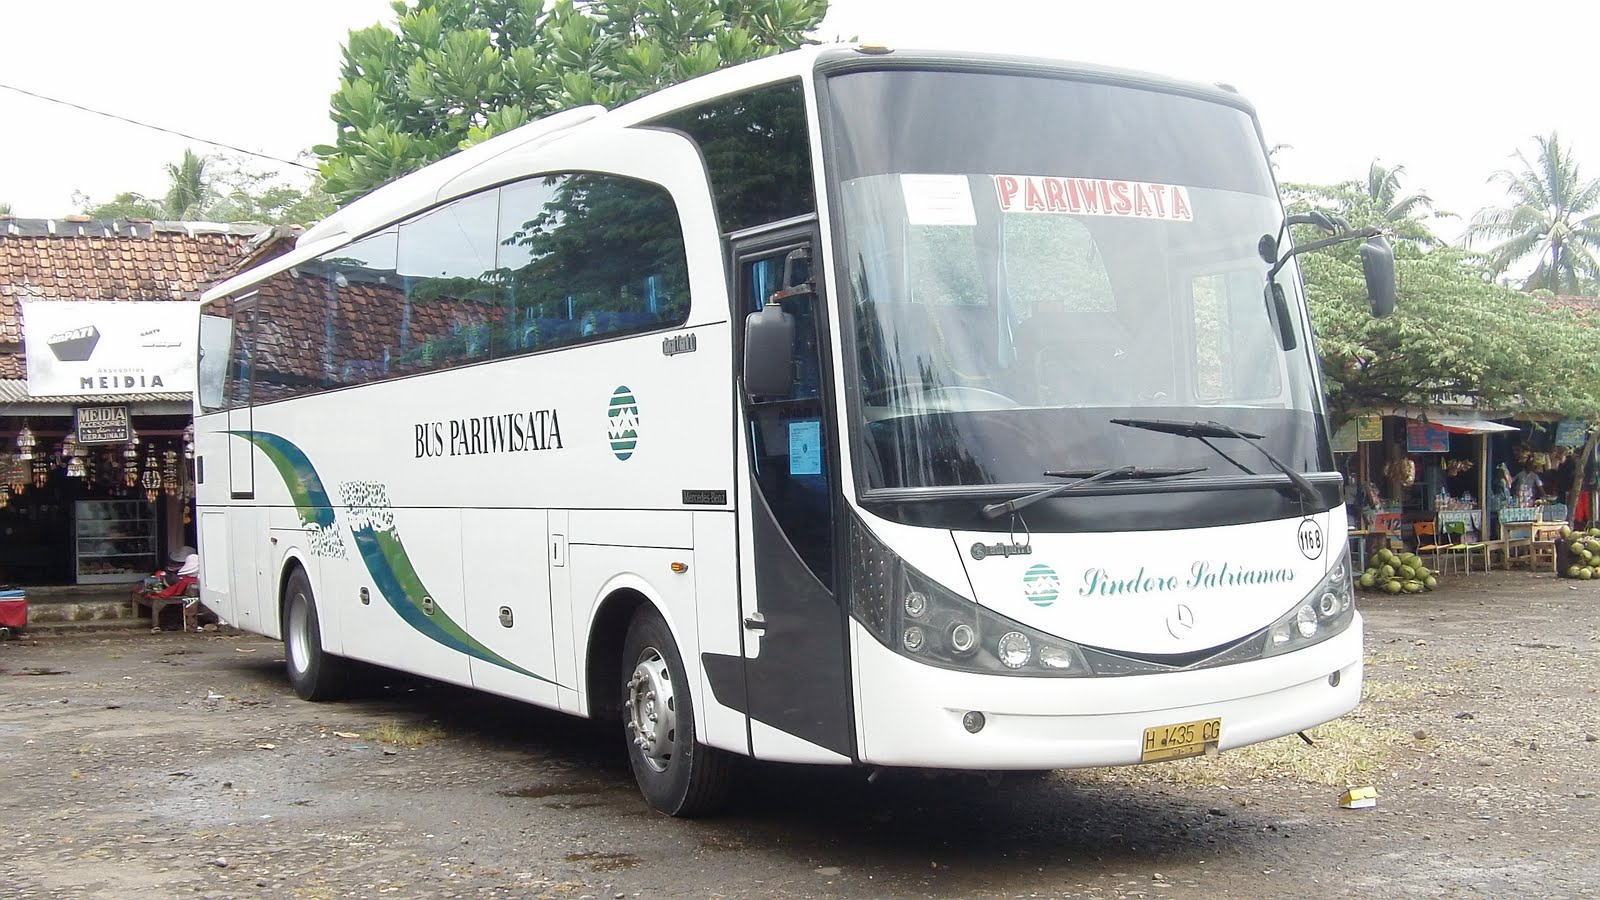 Sewa Bus Pariwisata Semarang Kaskus The Largest Indonesian